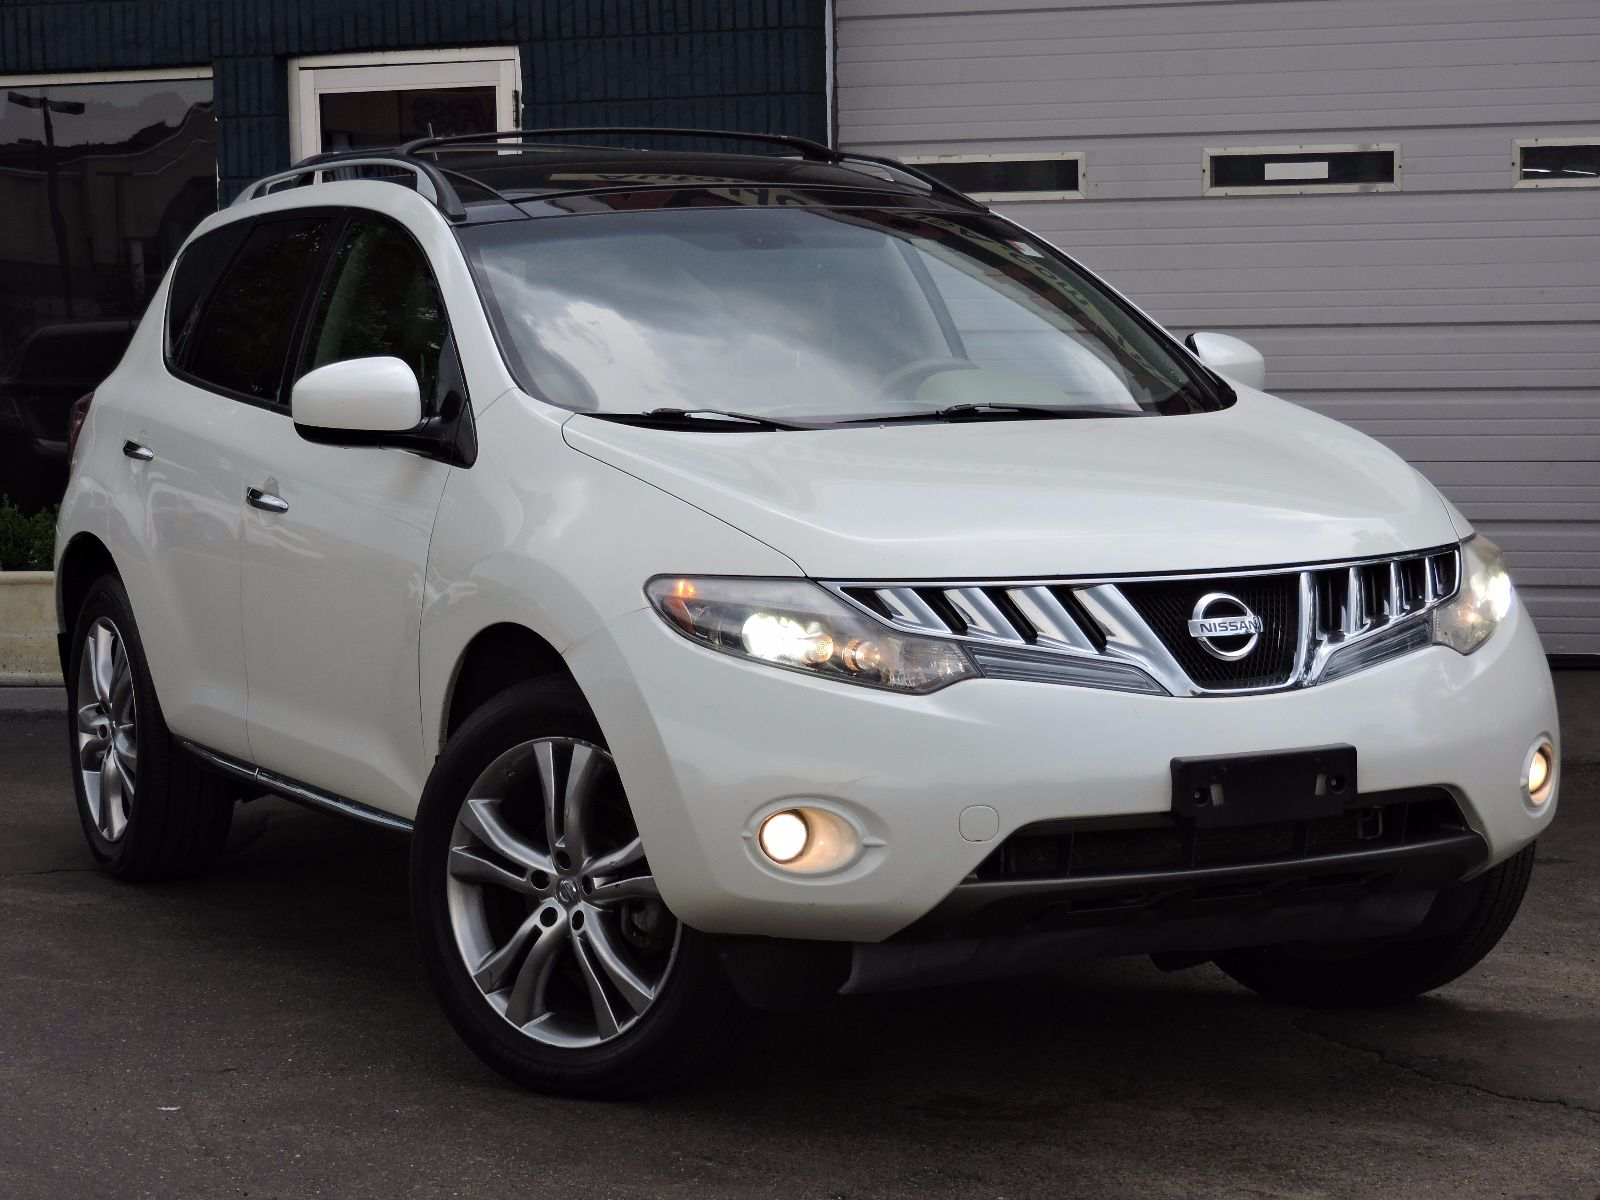 used 2010 nissan murano le at saugus auto mall. Black Bedroom Furniture Sets. Home Design Ideas